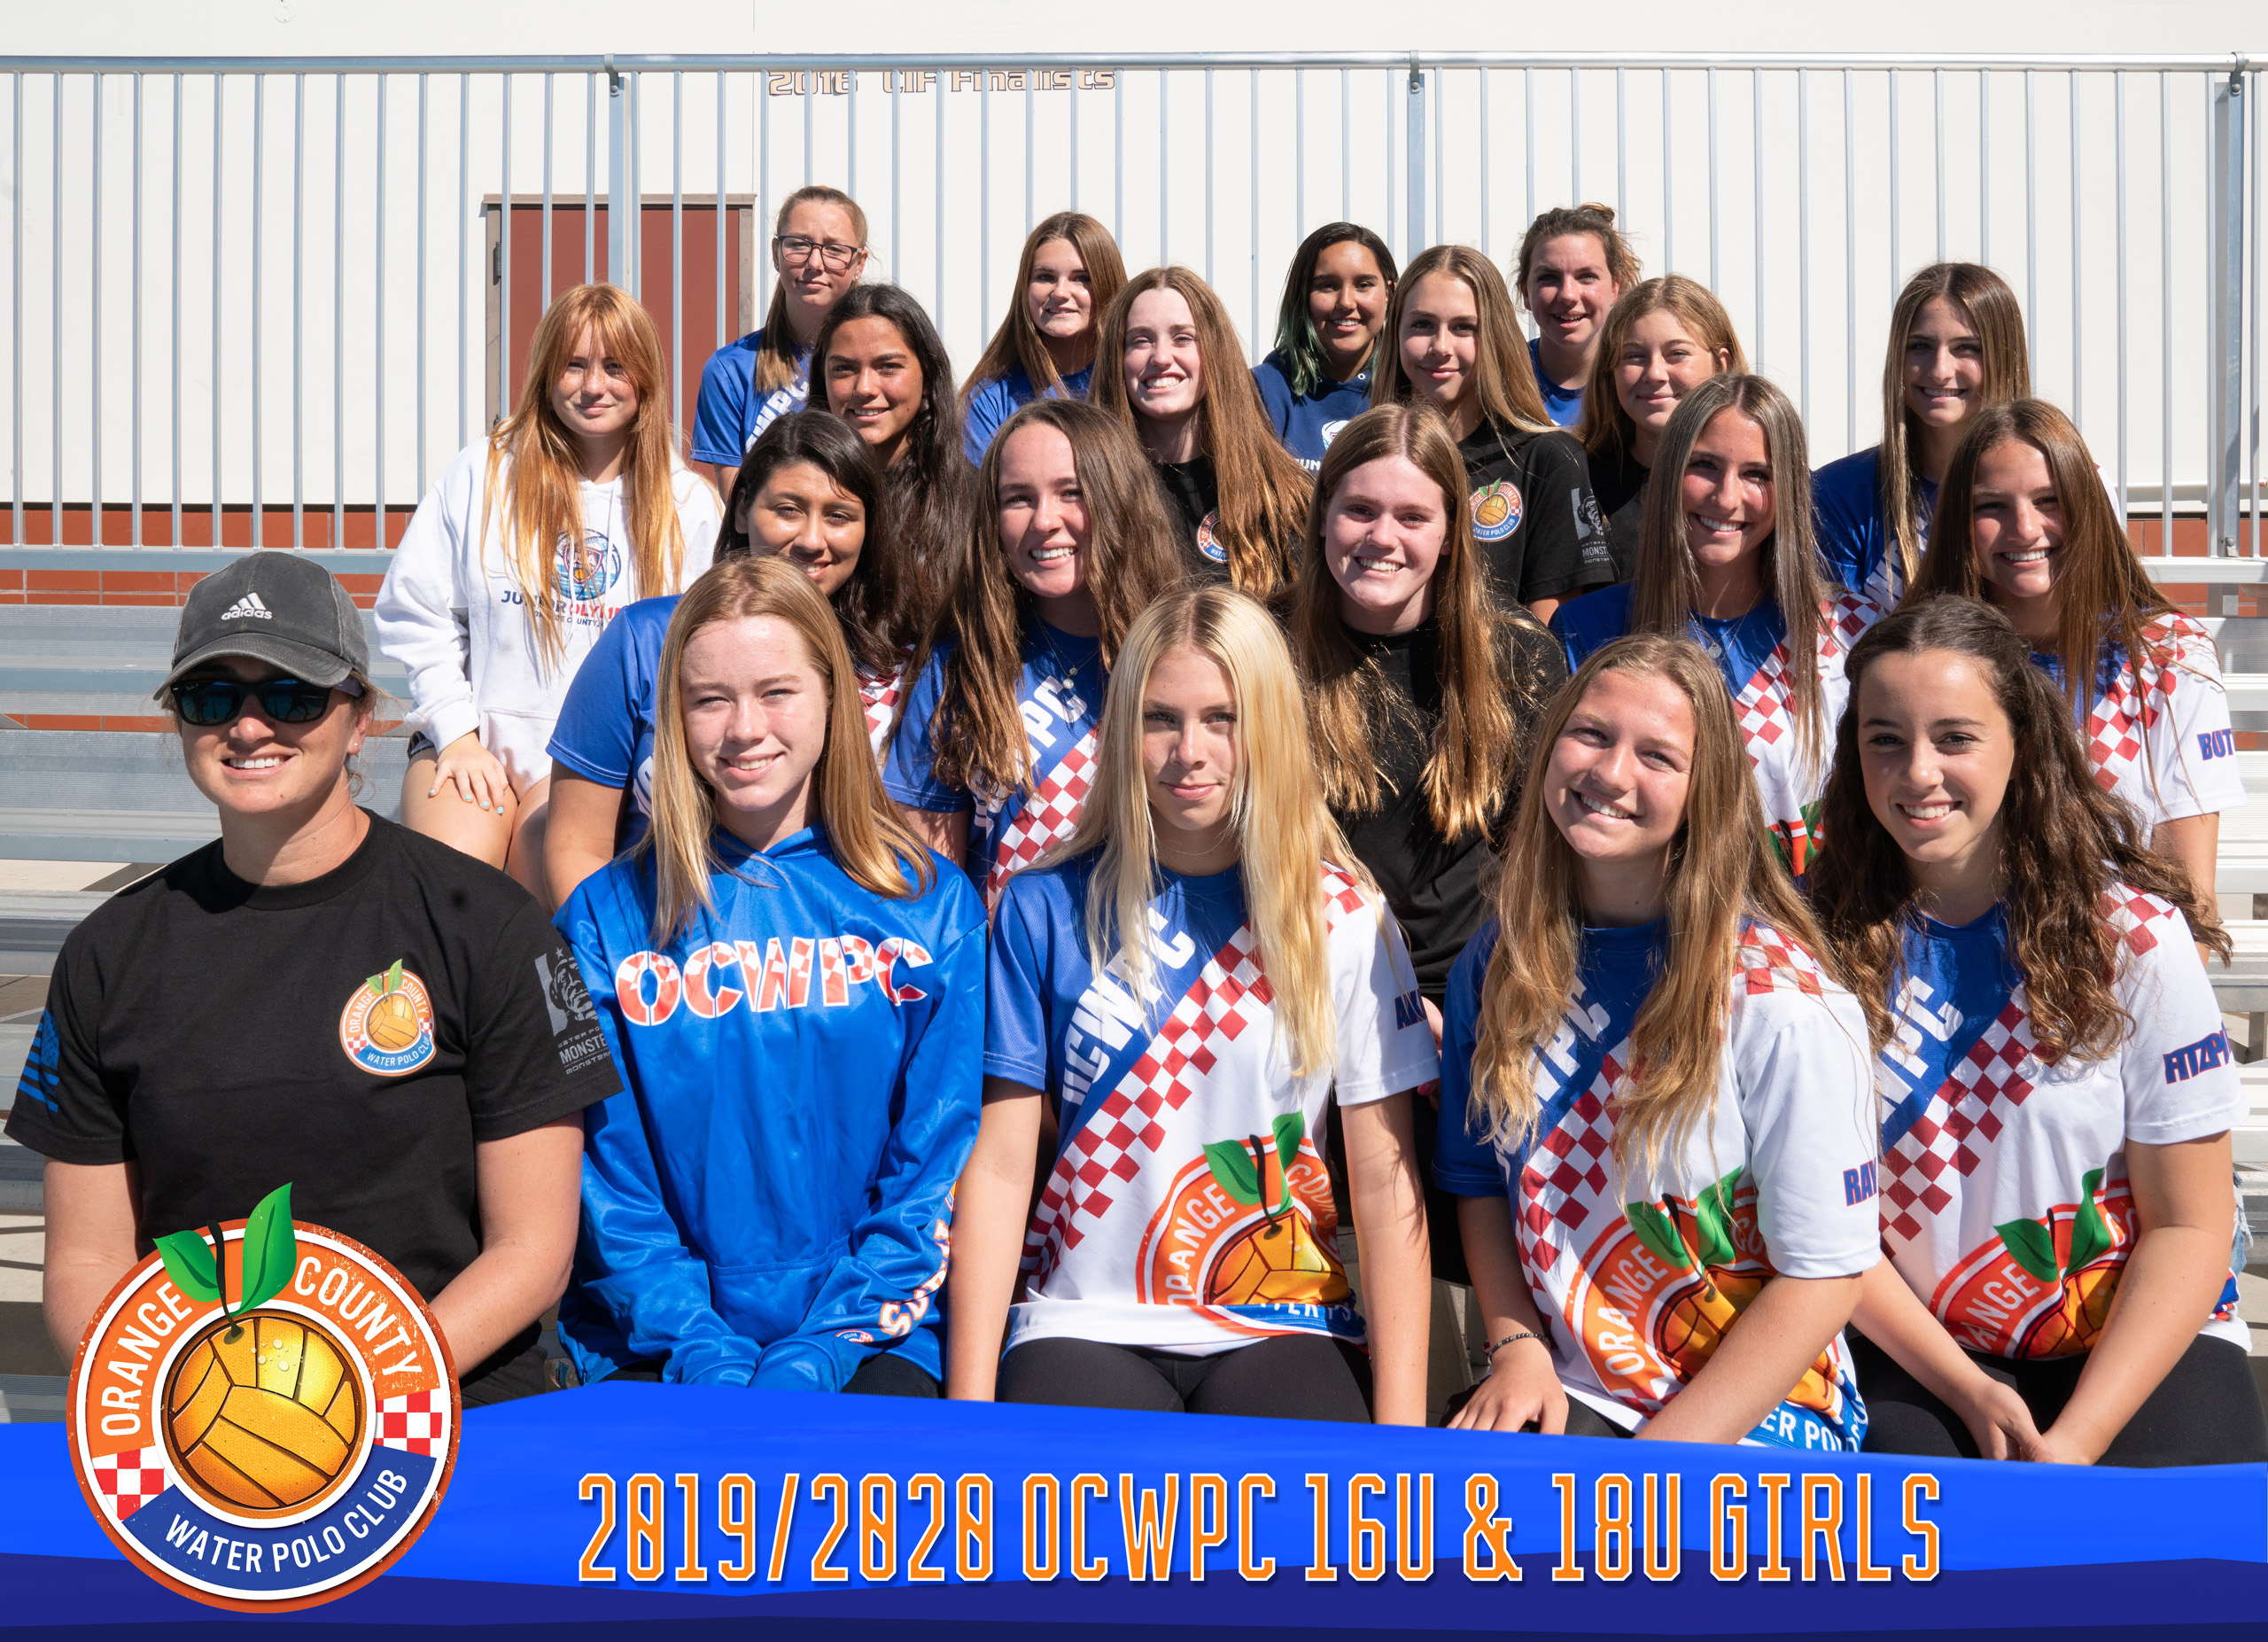 OCWPC-16U-18U-Girls-Team-2020-02-29-Jesse-Brossa_1-FINAL-MED